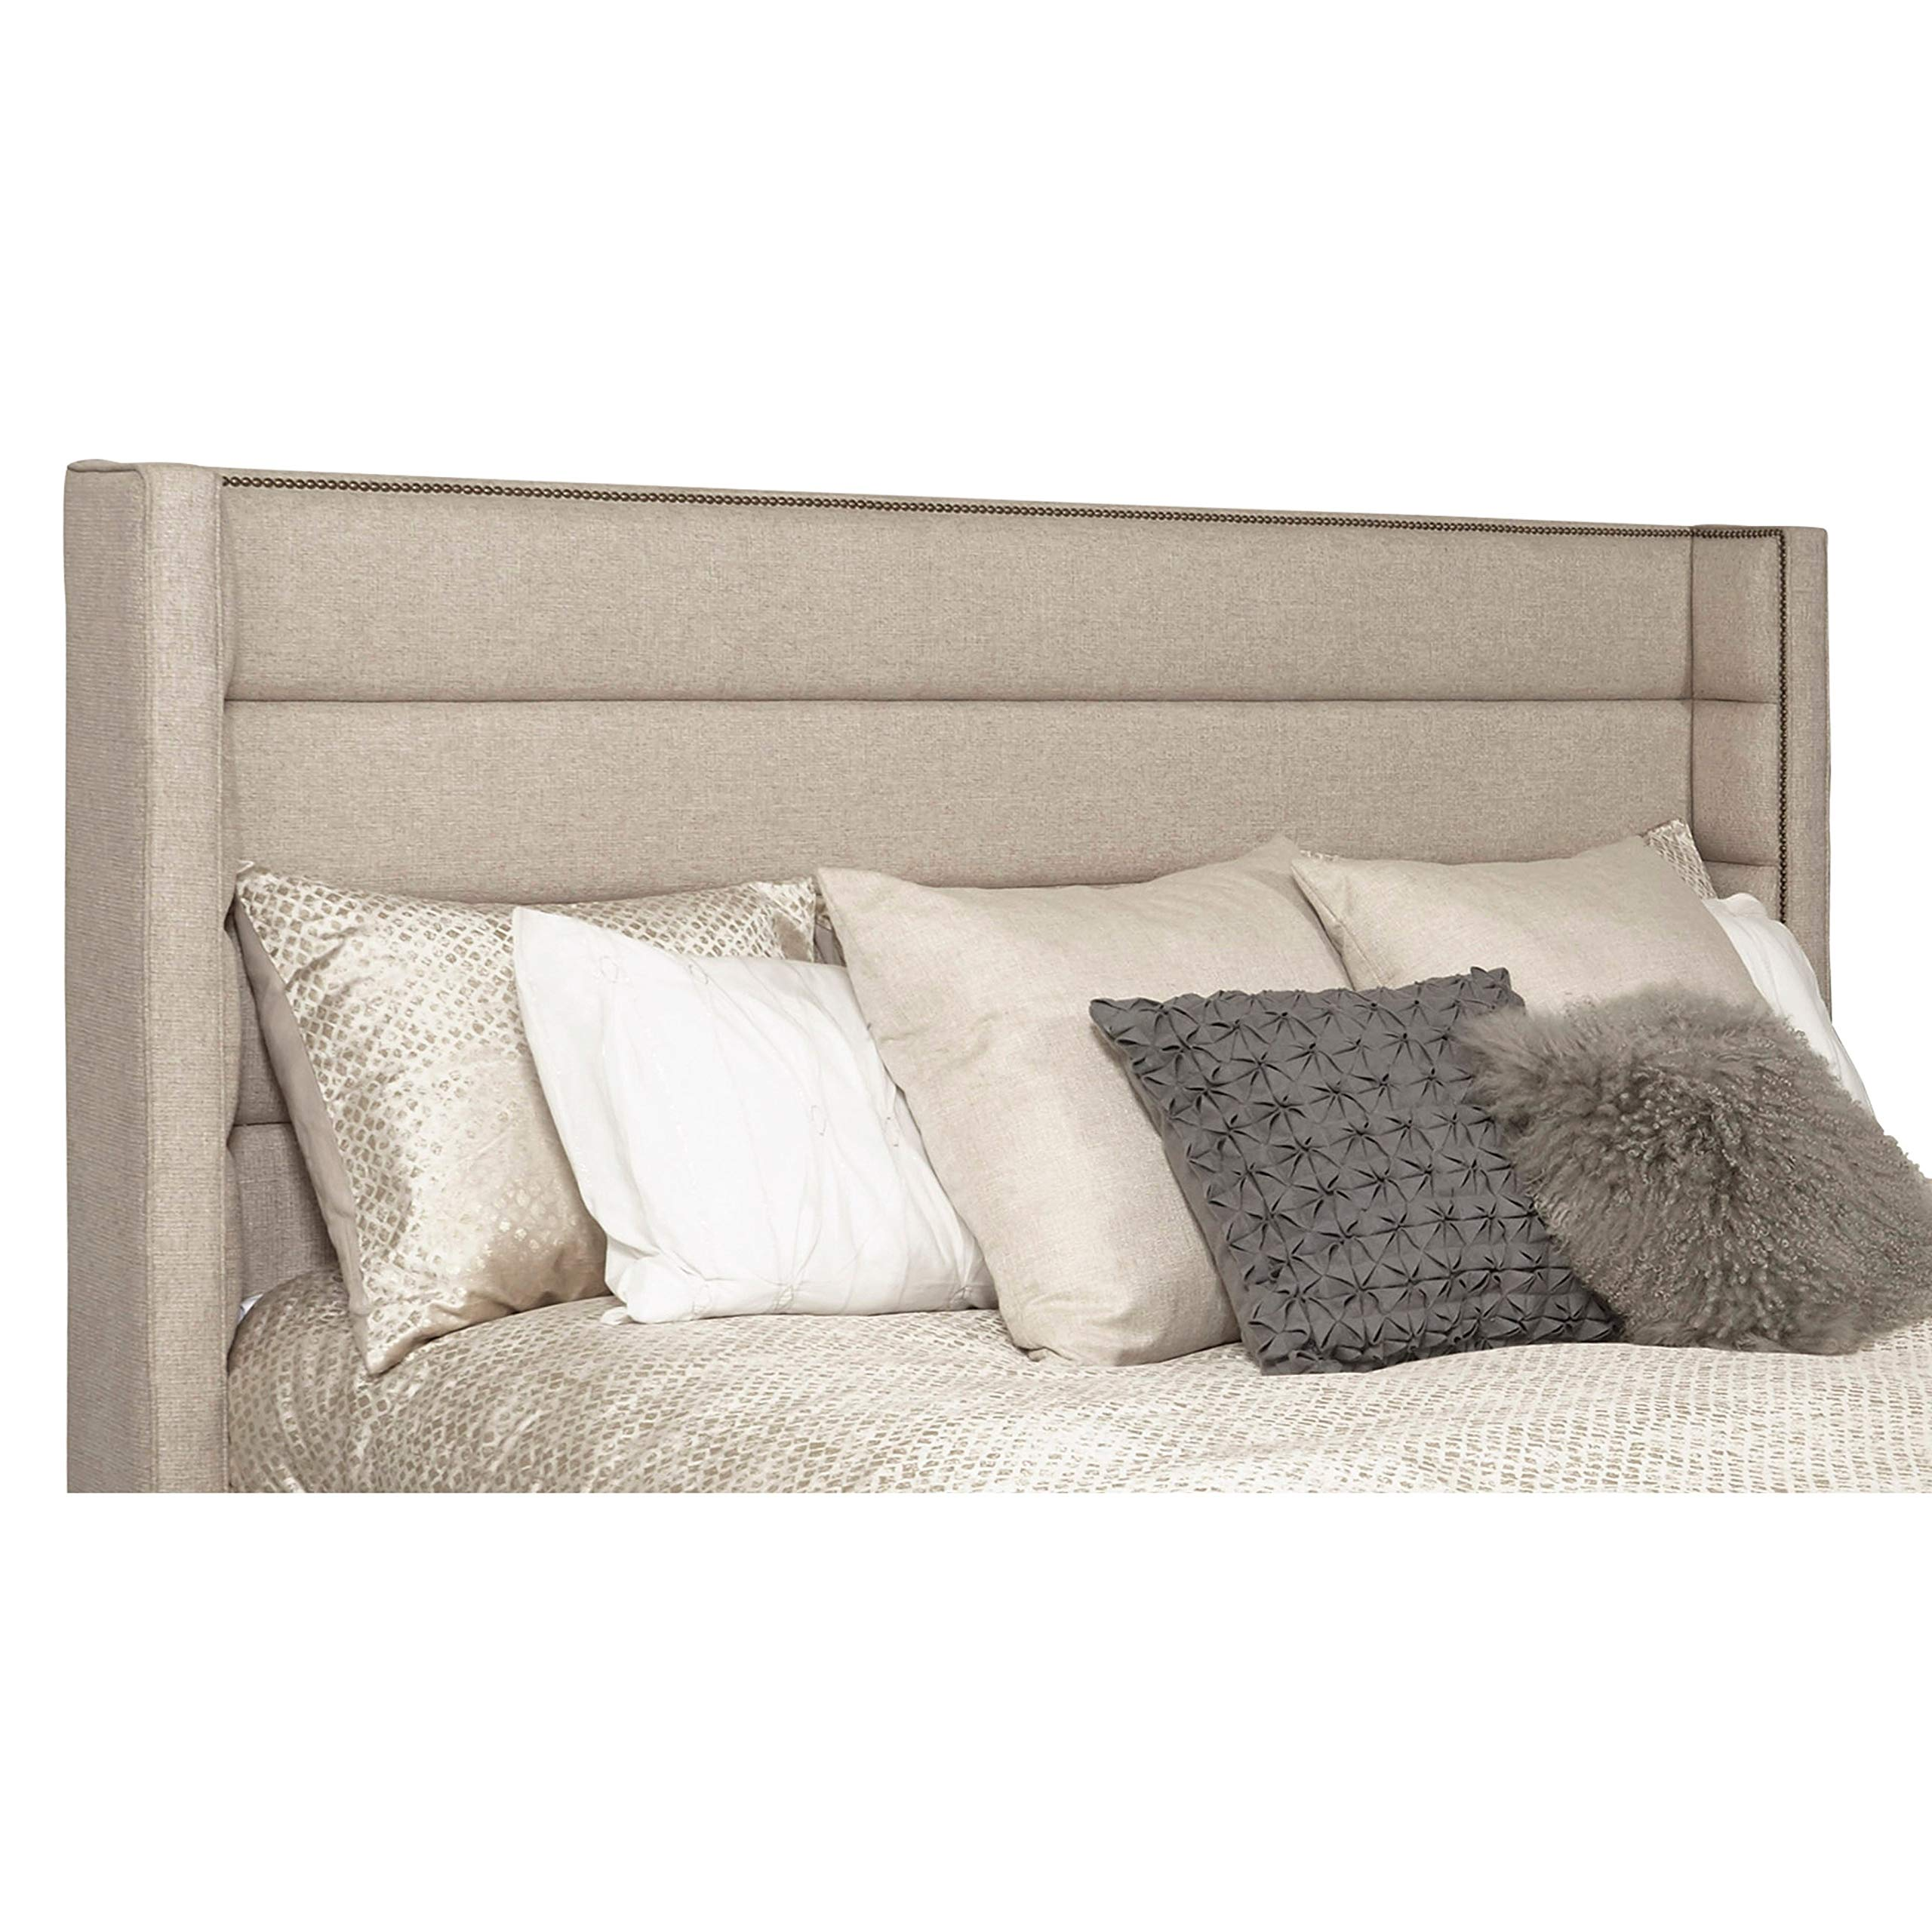 Wingback Channel Tufted Beige Upholstered Queen Headboard with Studs Traditional Fabric Padded by Unknown